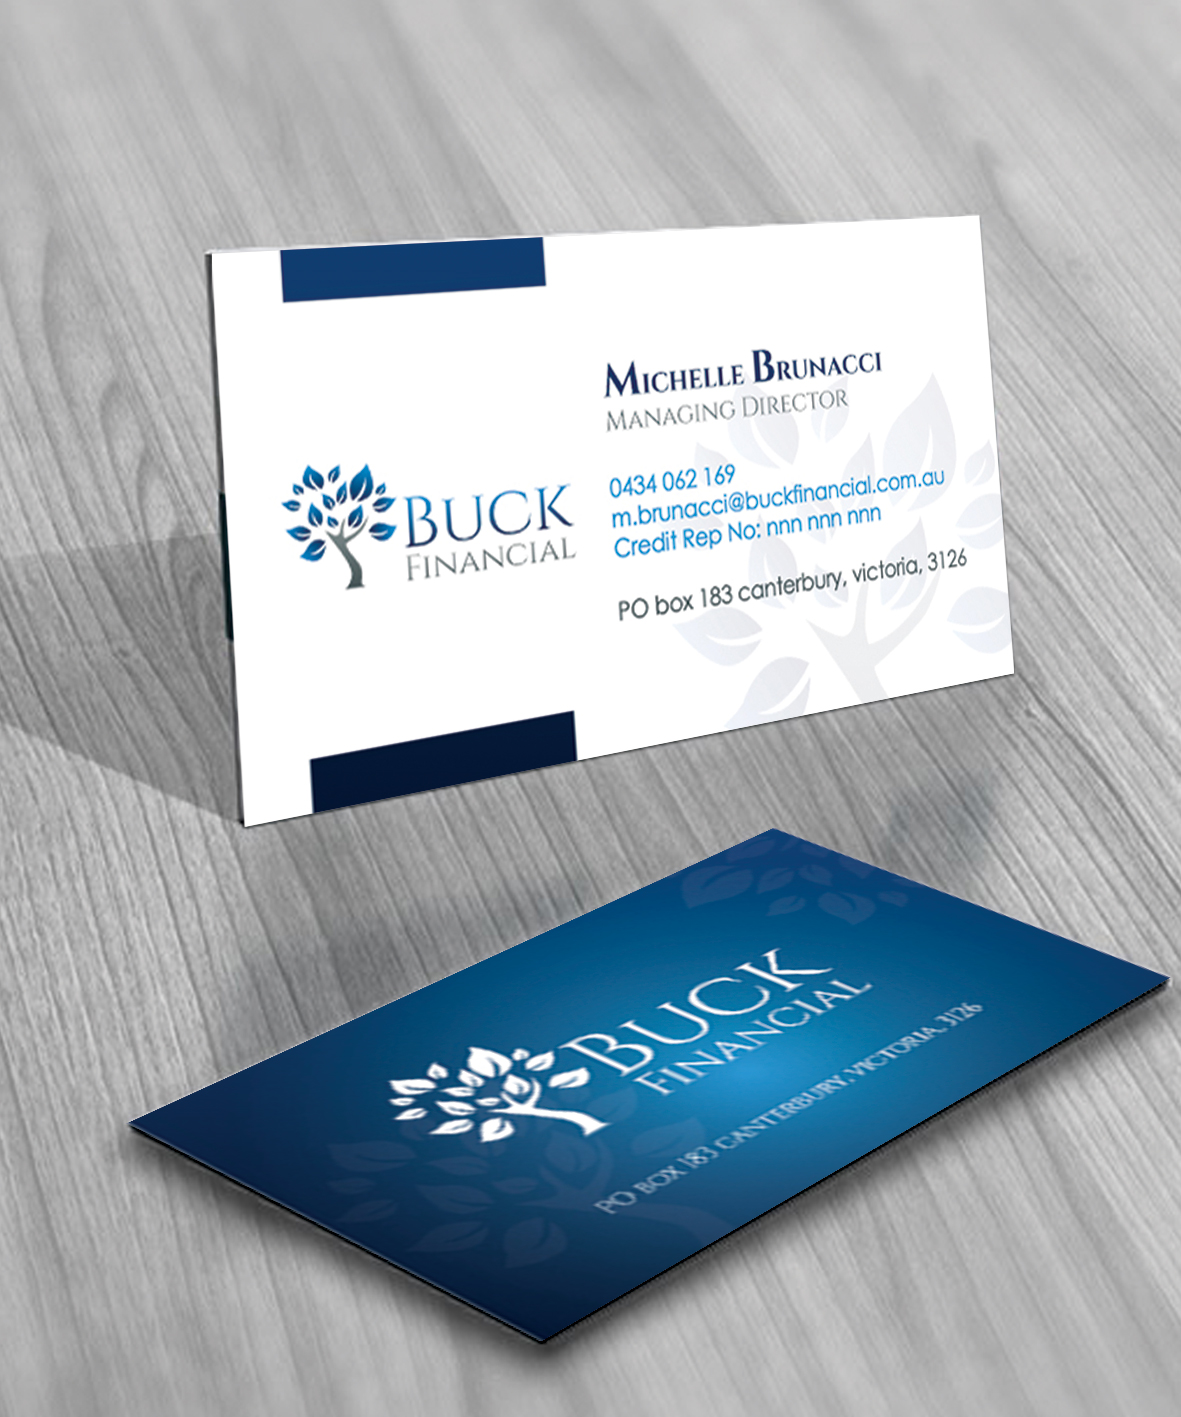 Famous Financial Business Cards Ideas - Business Card Ideas - etadam ...